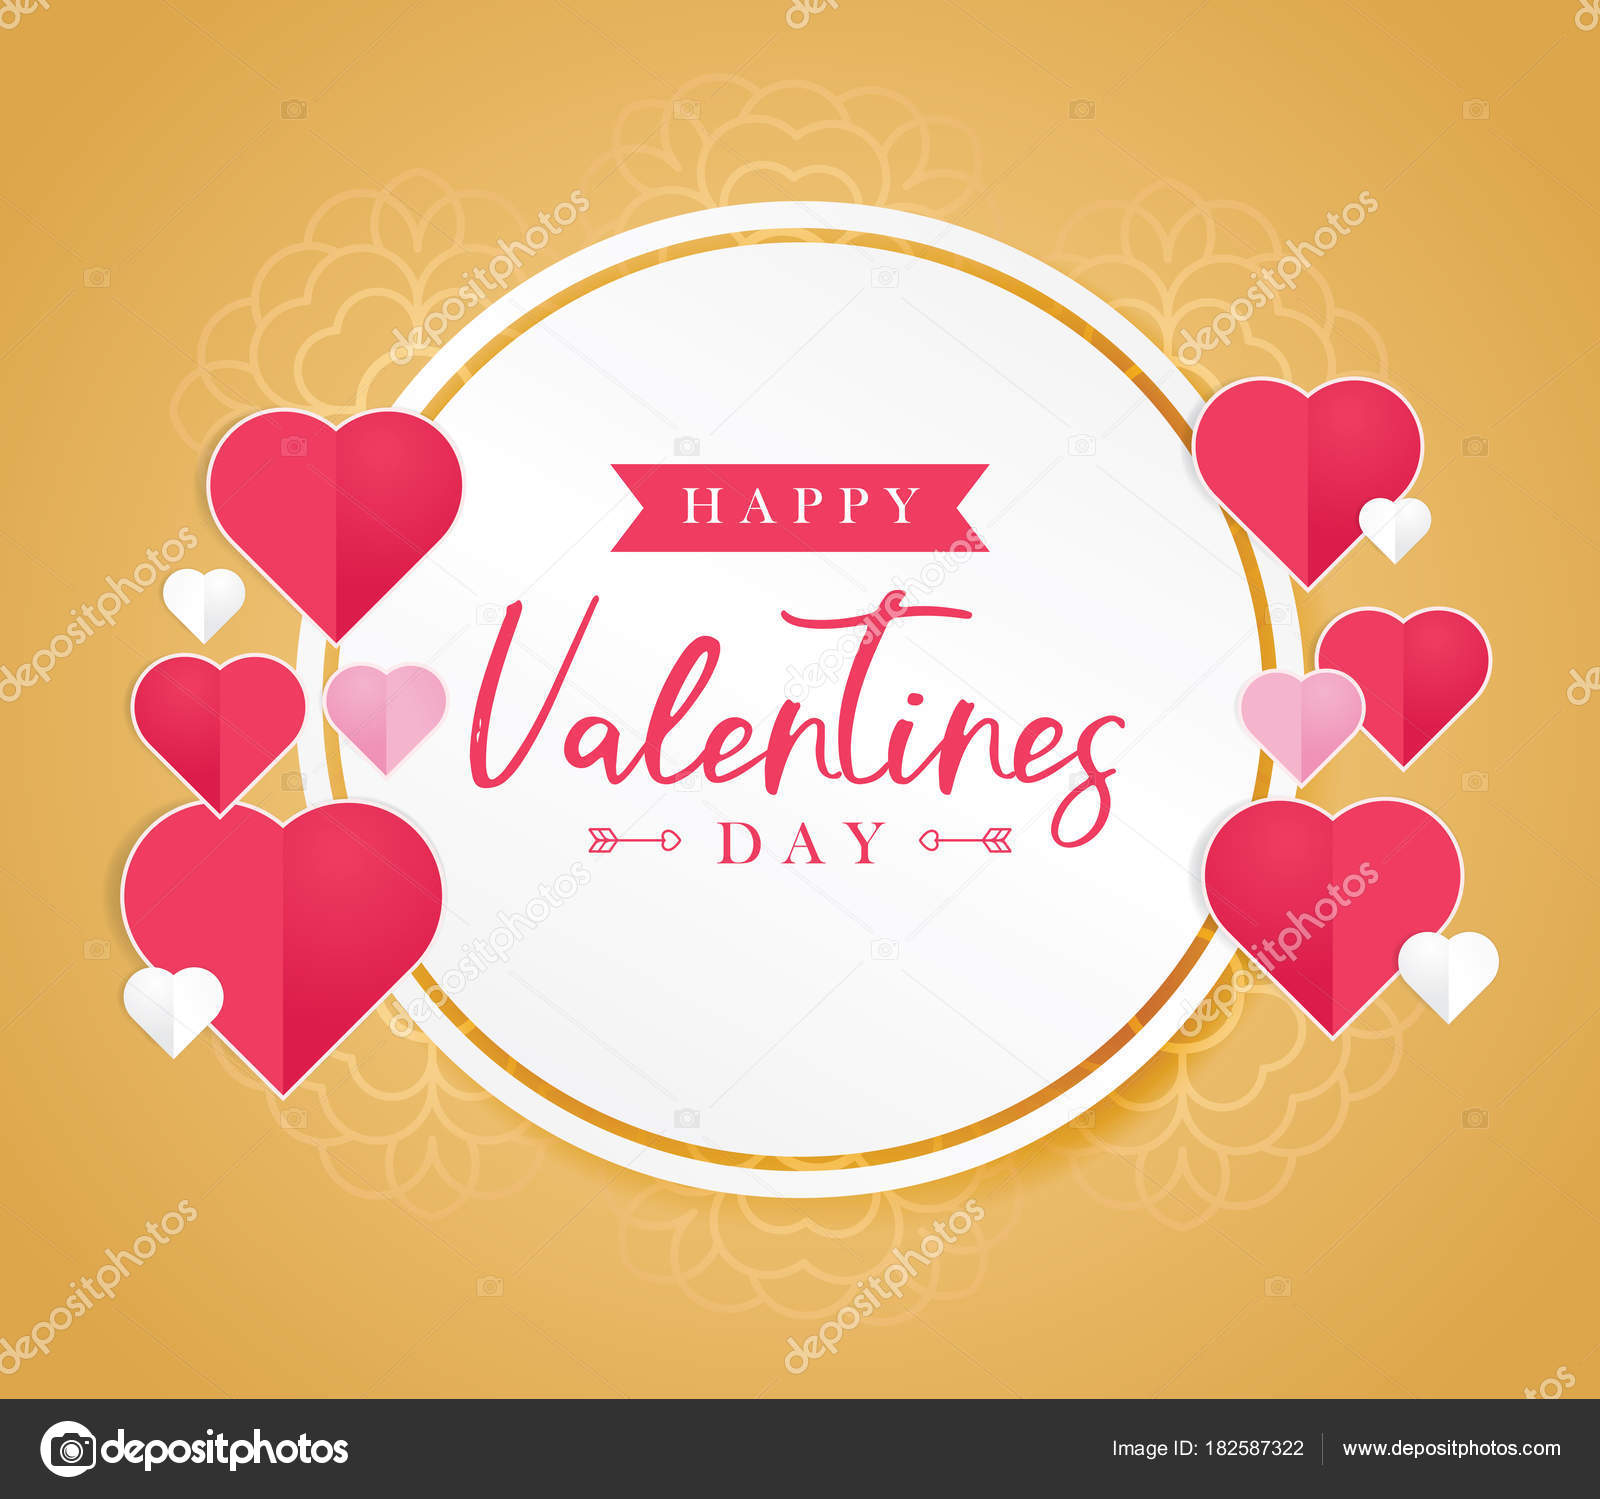 Happy Valentines Day Greeting Card Greeting Cards Valentine Day